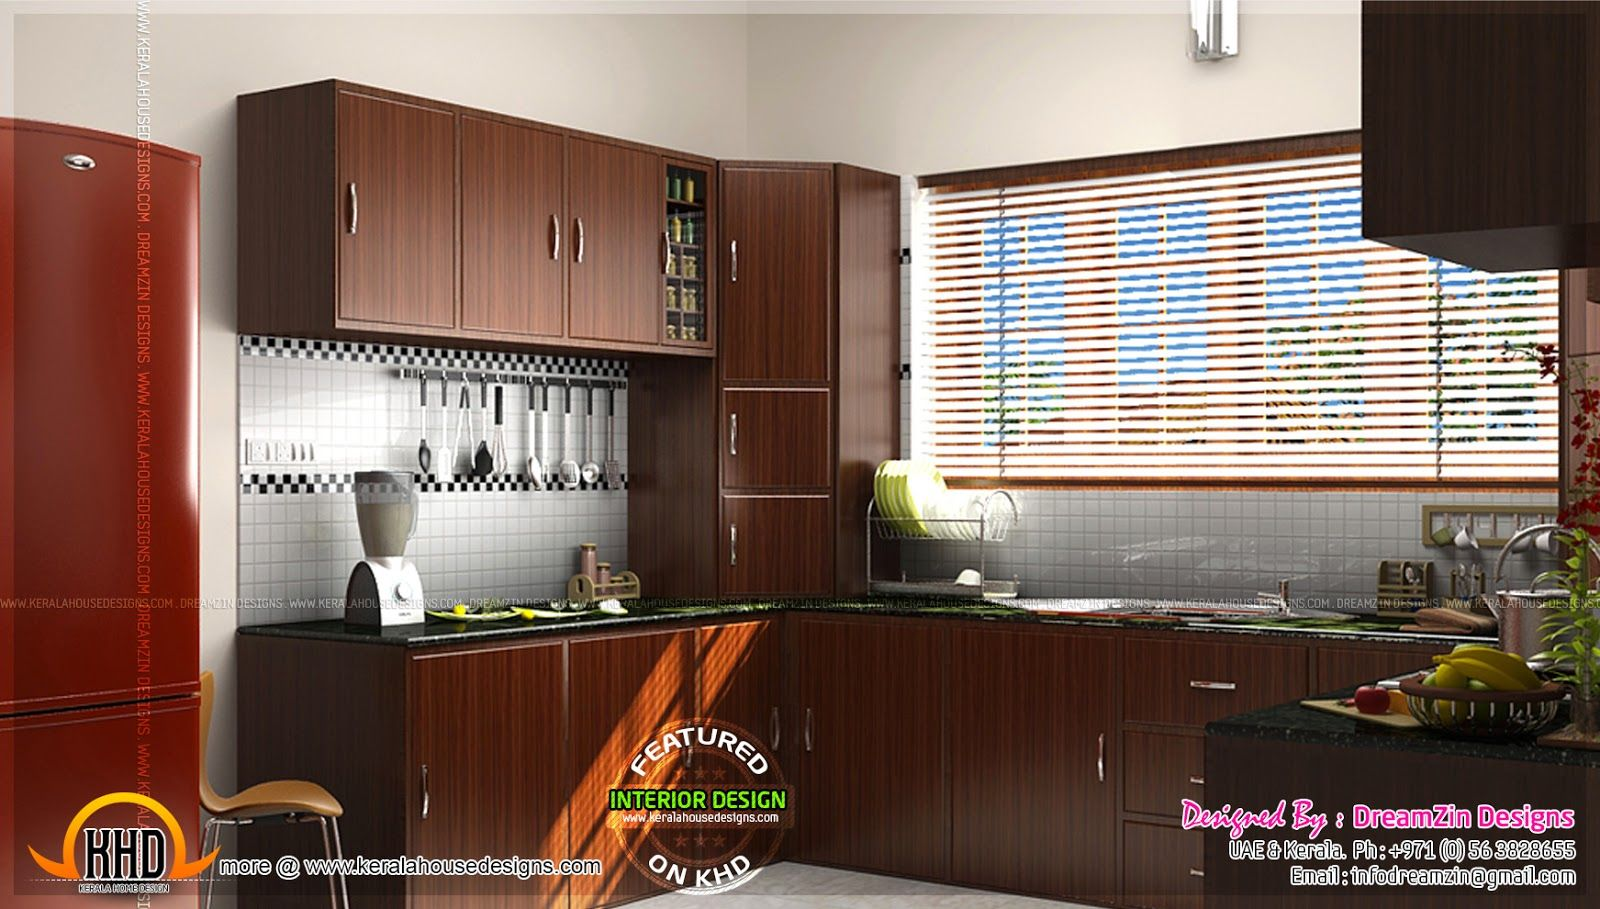 Kerala kitchen interior design modular kitchen kerala for Kerala model interior designs